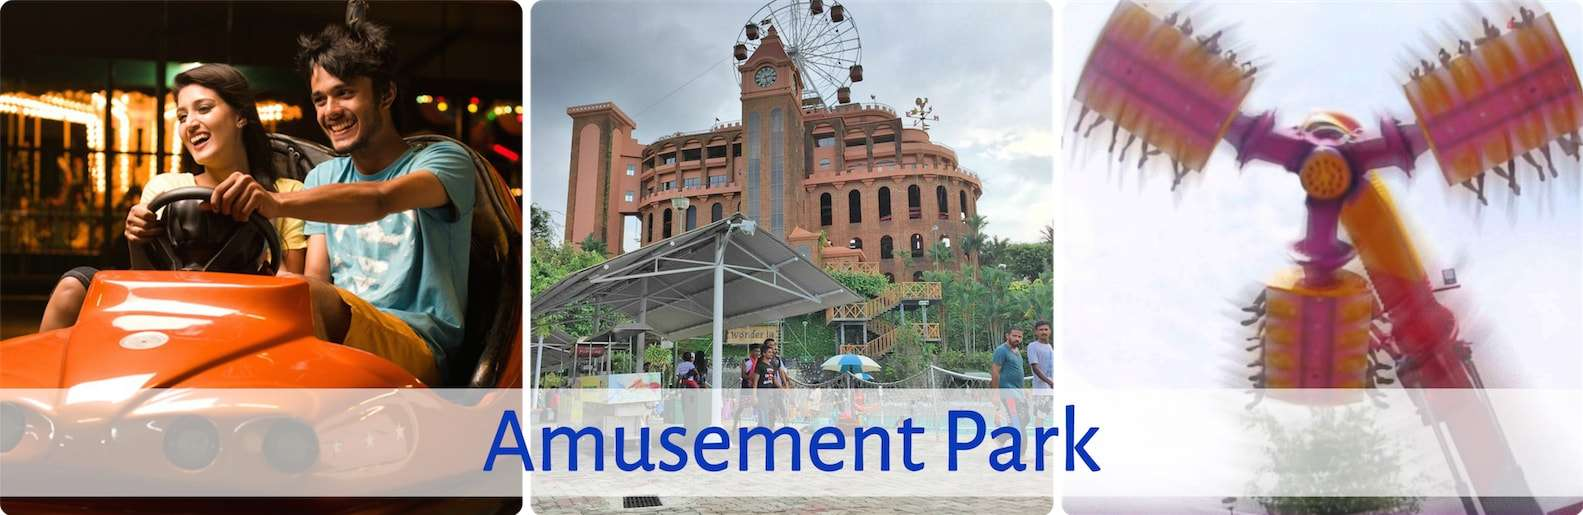 Amusement-Park-of-Wonderla.jpg